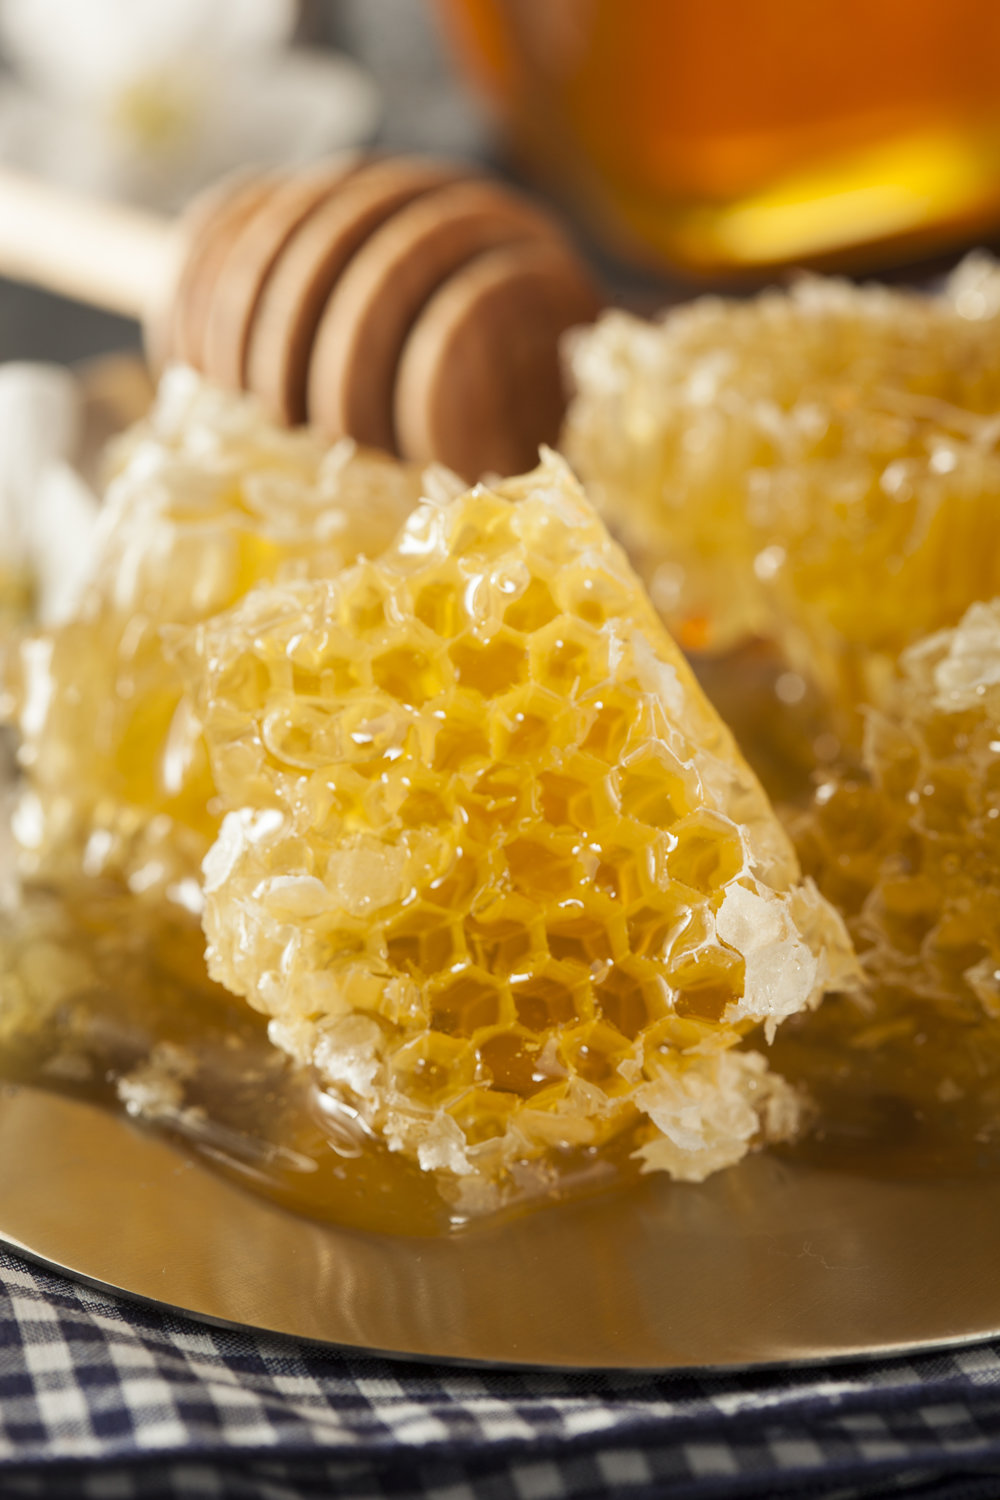 Organic Raw Golden Honey Comb